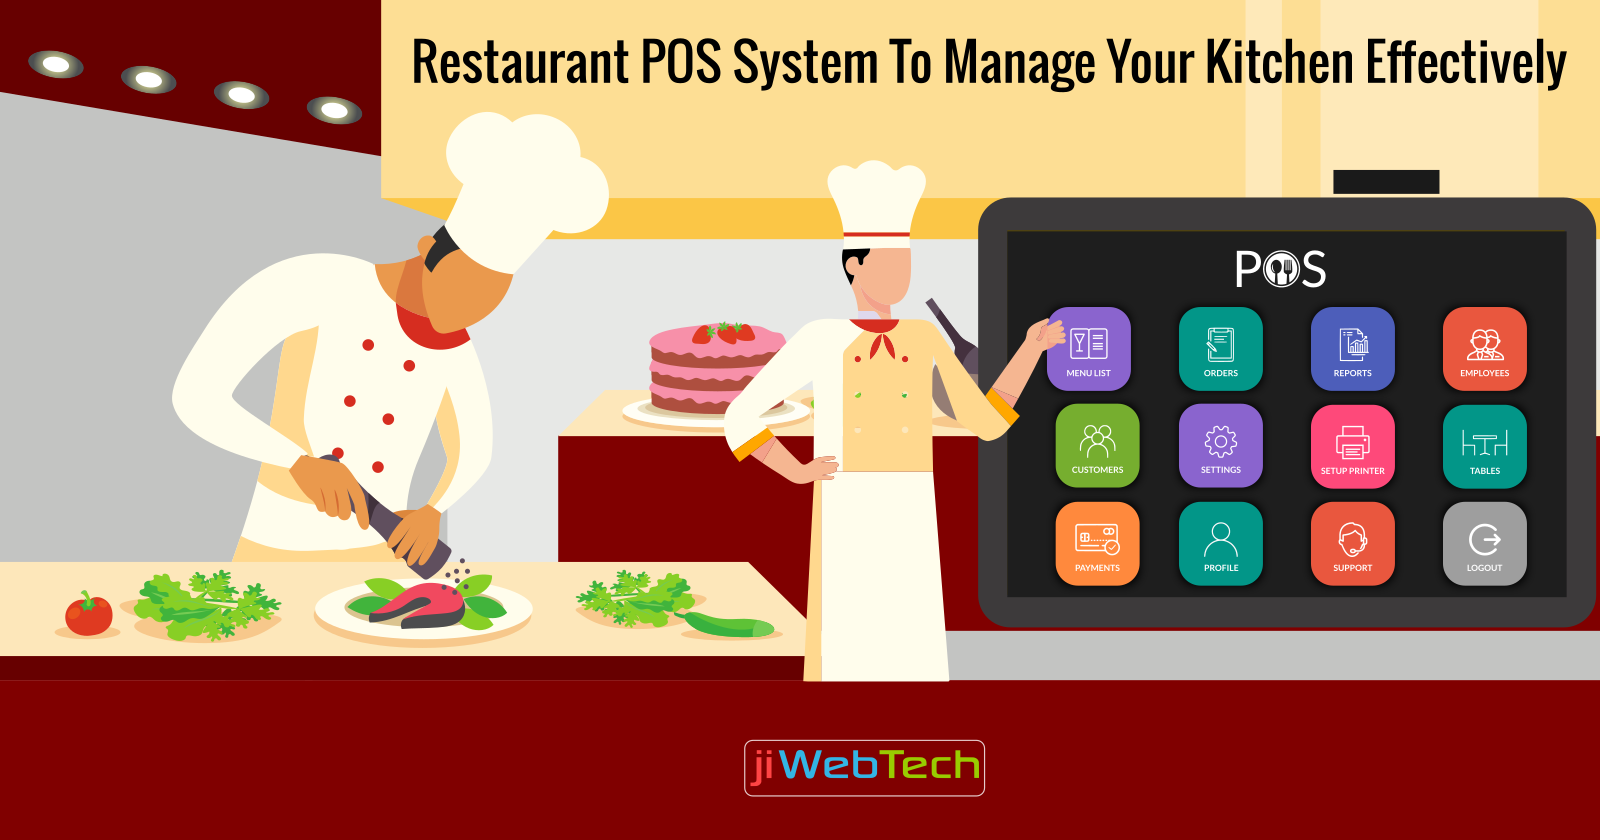 How Does A Restaurant POS Software Help In Kitchen Management?